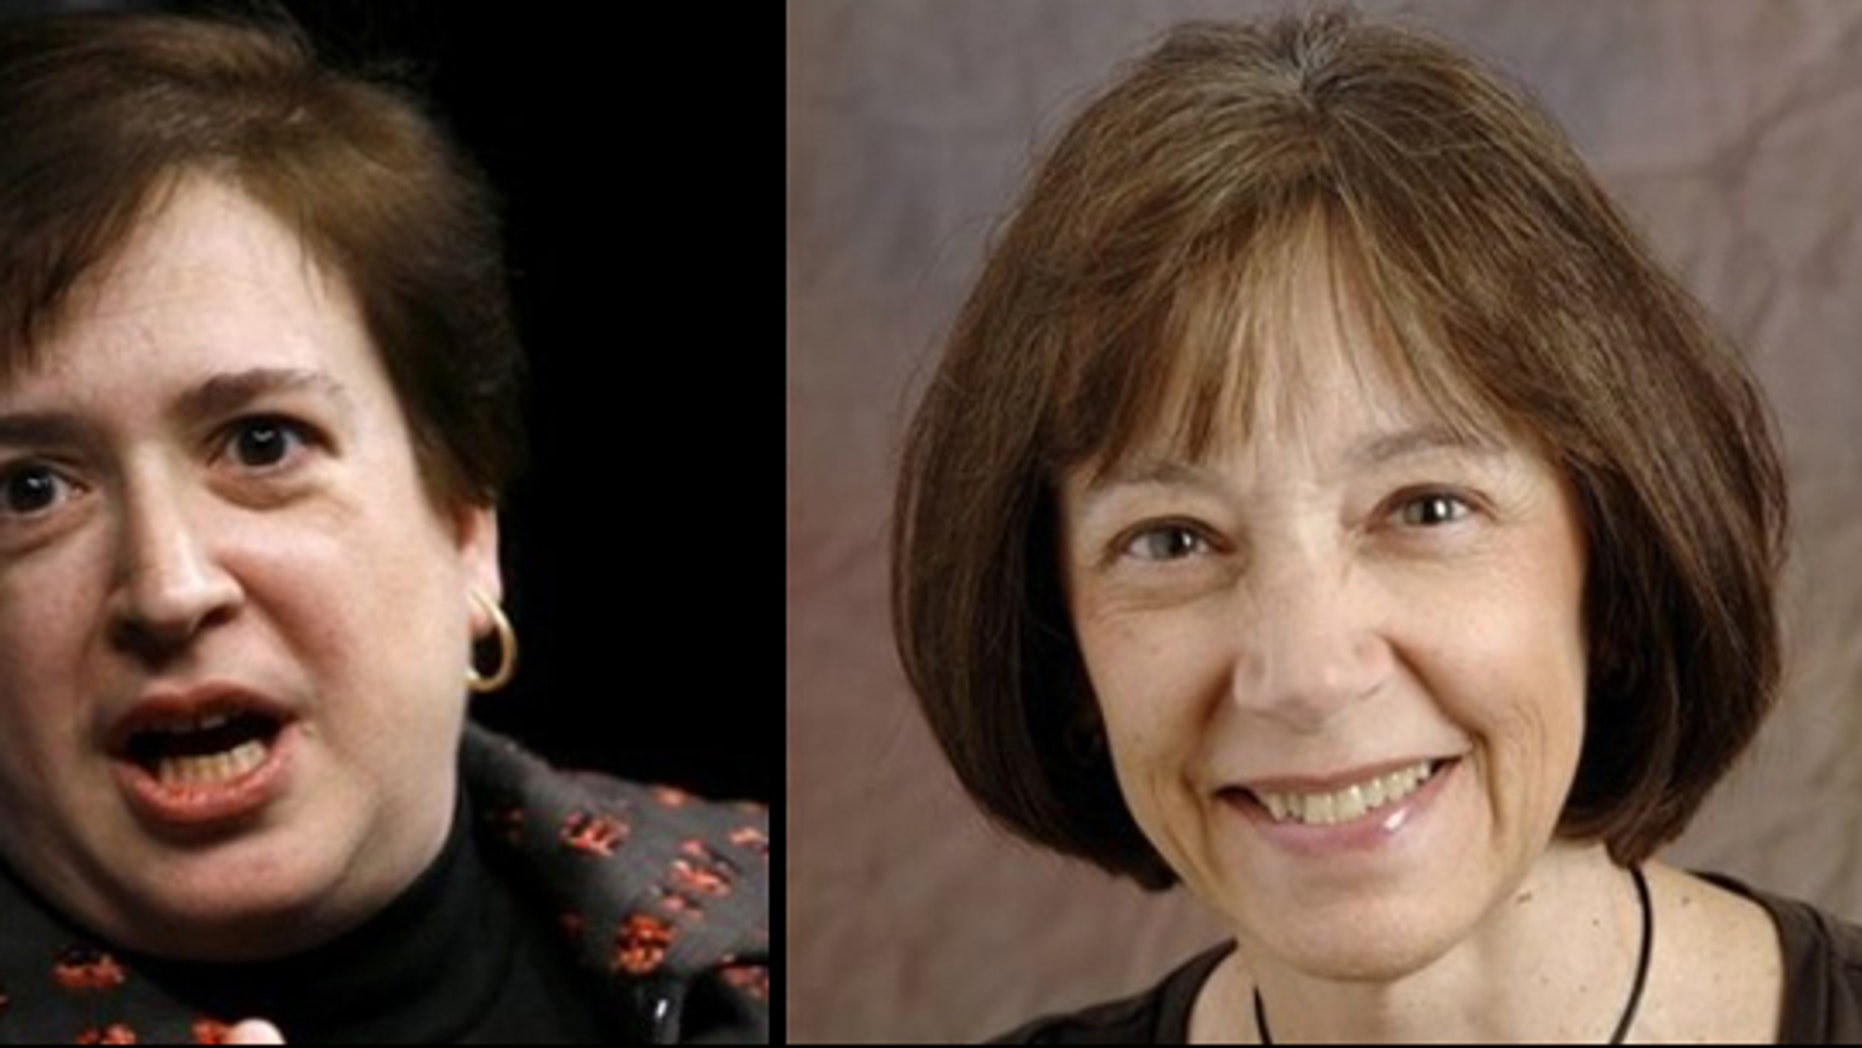 U.S. Solicitor General Elena Kagan (l), and Judge Diane Pamela Wood of the 7th U.S. Circuit Court of Appeals (r) are two of the leading candidates to replace retiring Supreme Court Justice John Paul Stevens. (AP)